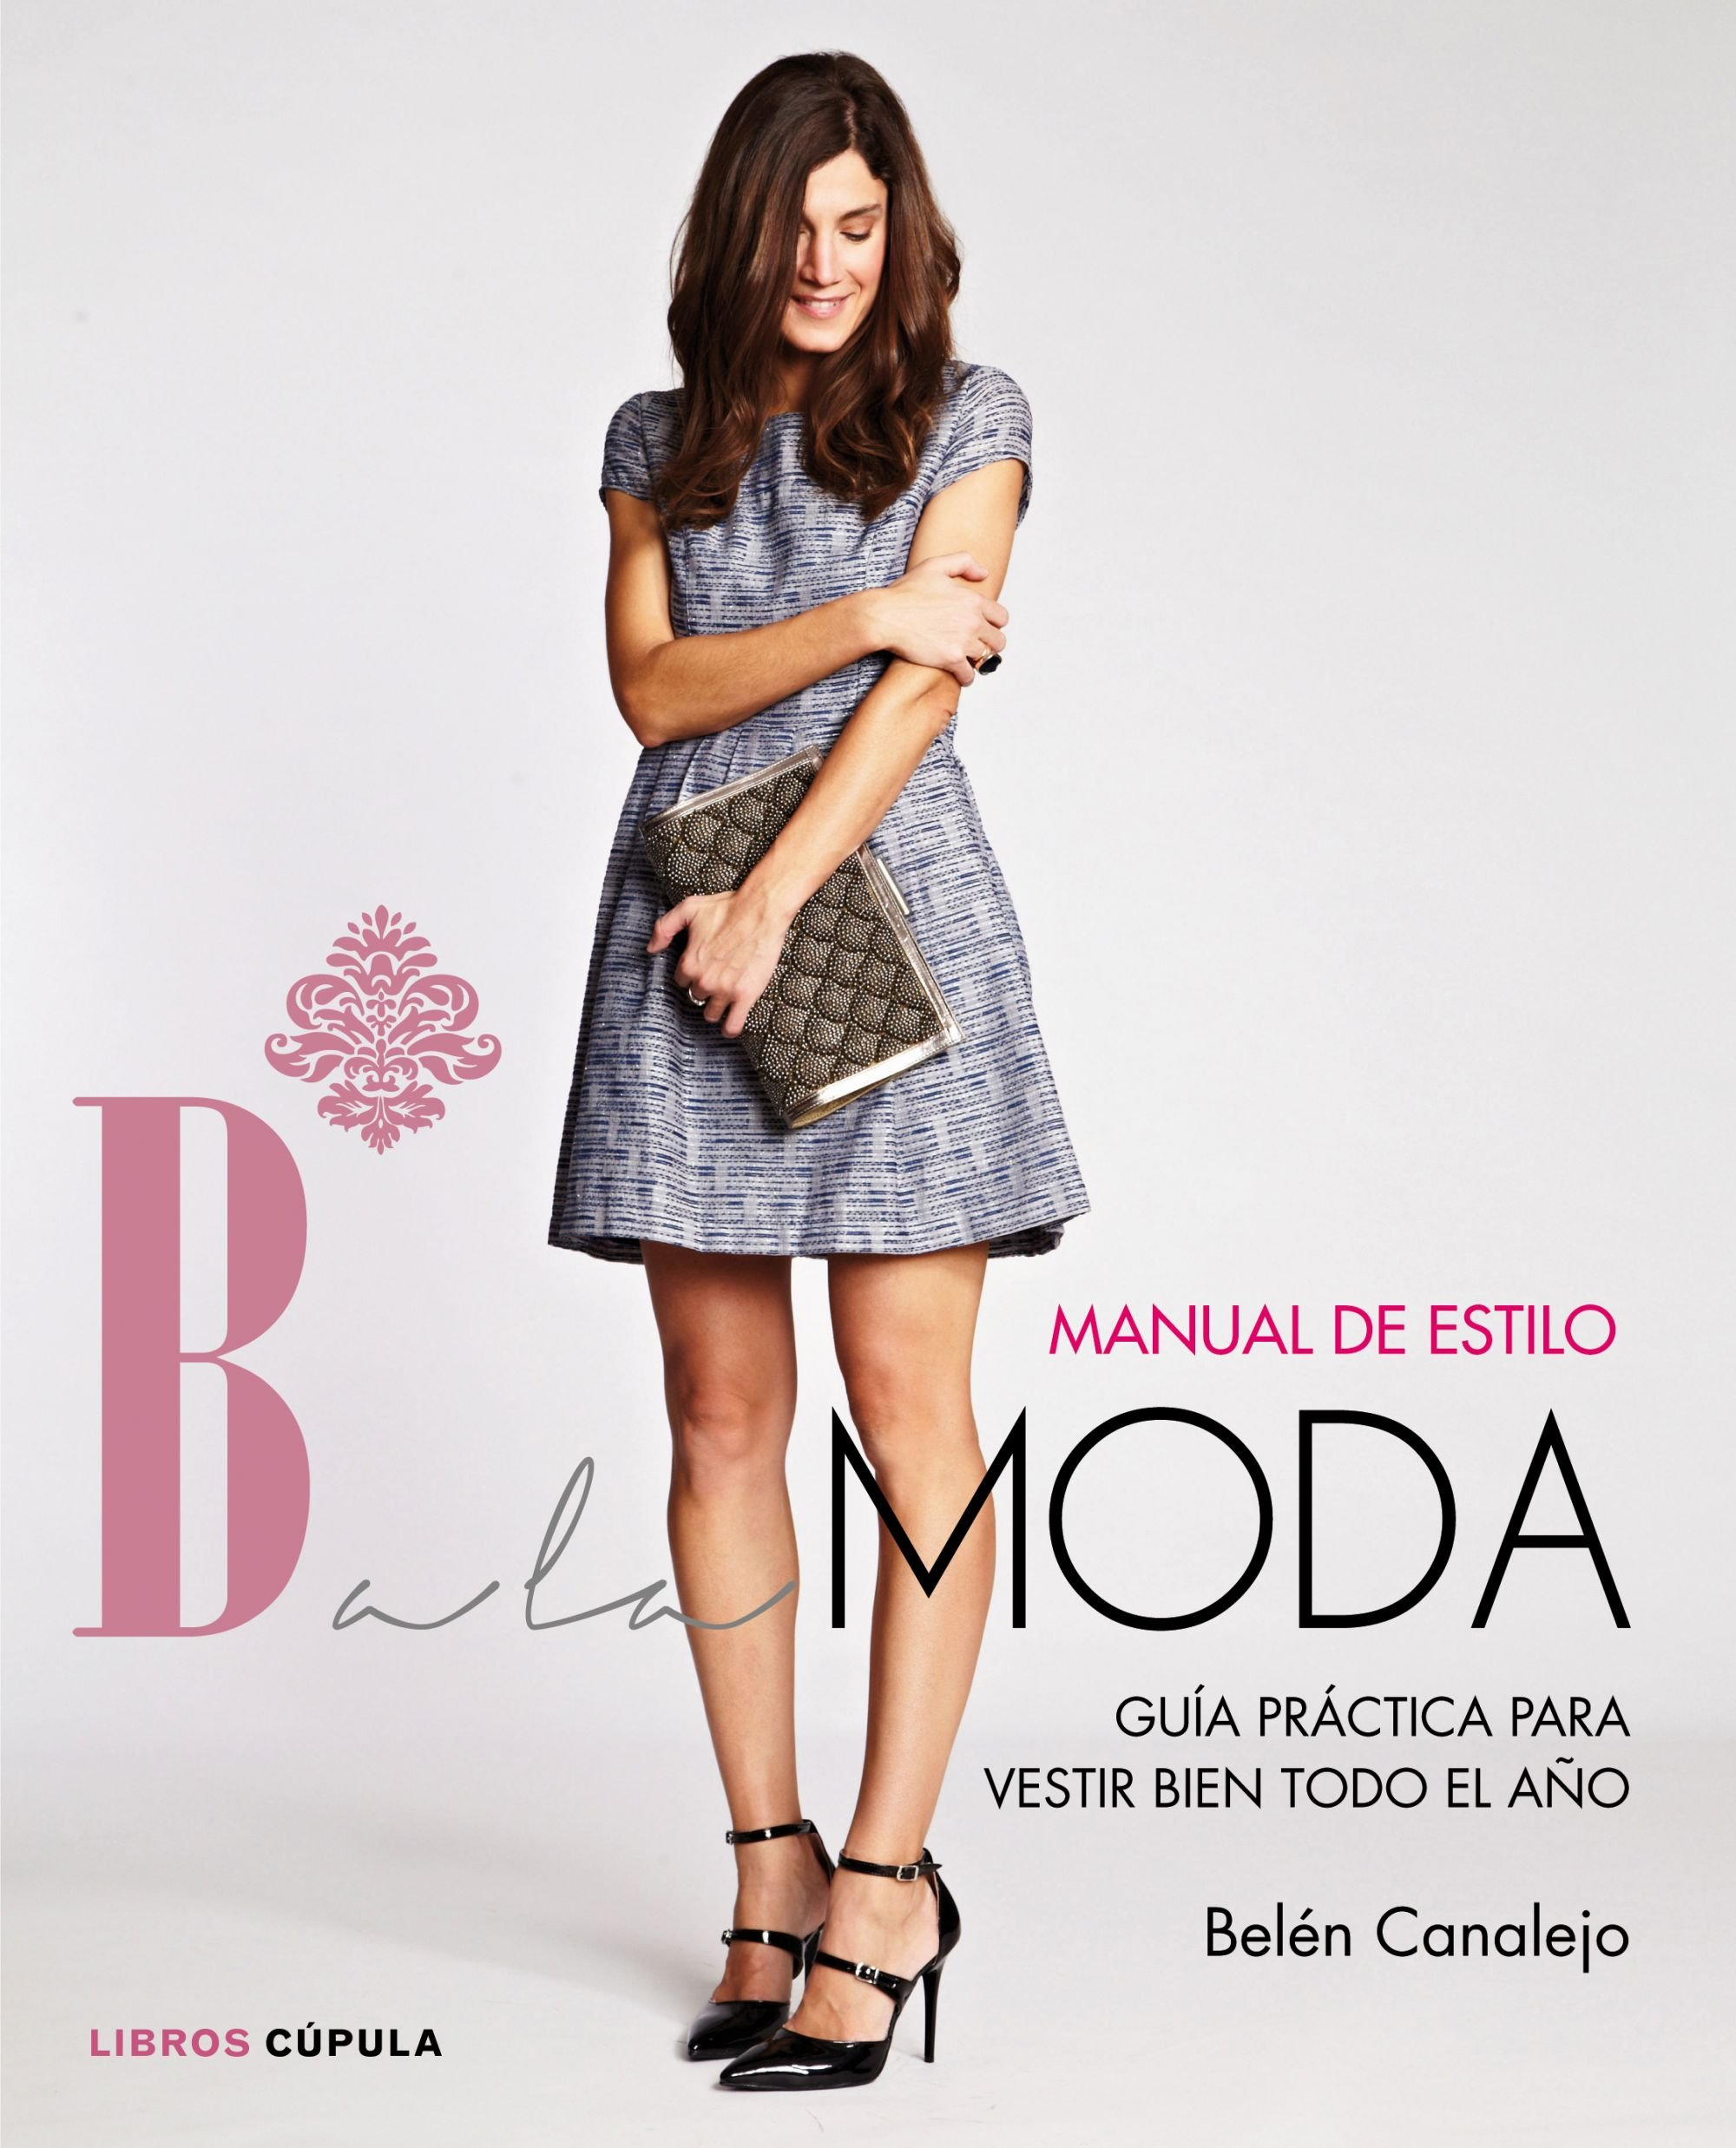 Manual de estilo Balamoda: Belén Canalejo: 9788448021283: Amazon.com: Books